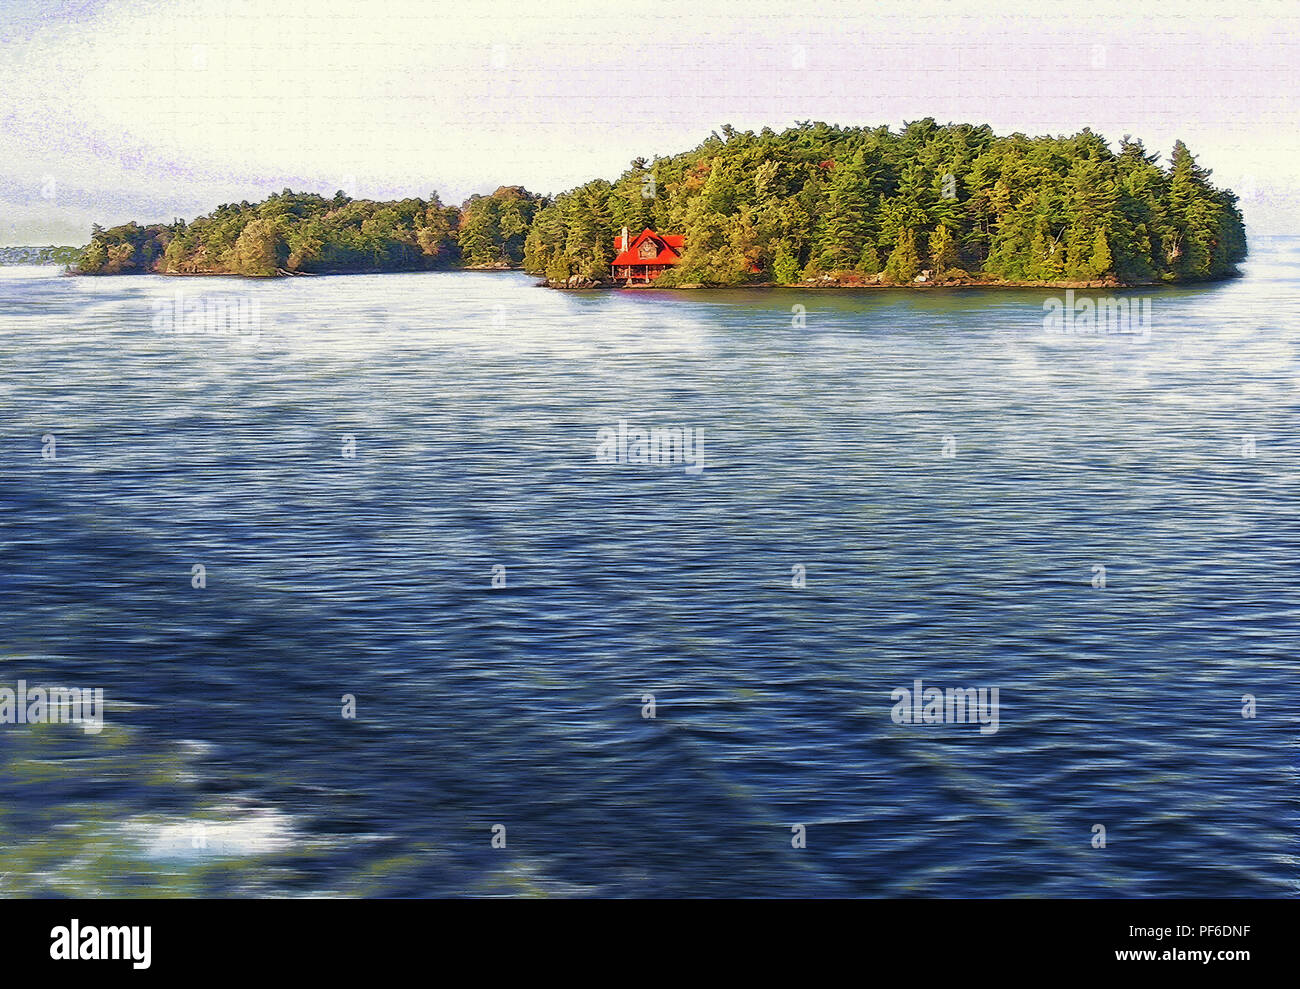 While on a ferryboat tourist cruise in the Thousand Island, Alexandria Bay, region of upper state New York, USA, we encountered many picturesque views Stock Photo